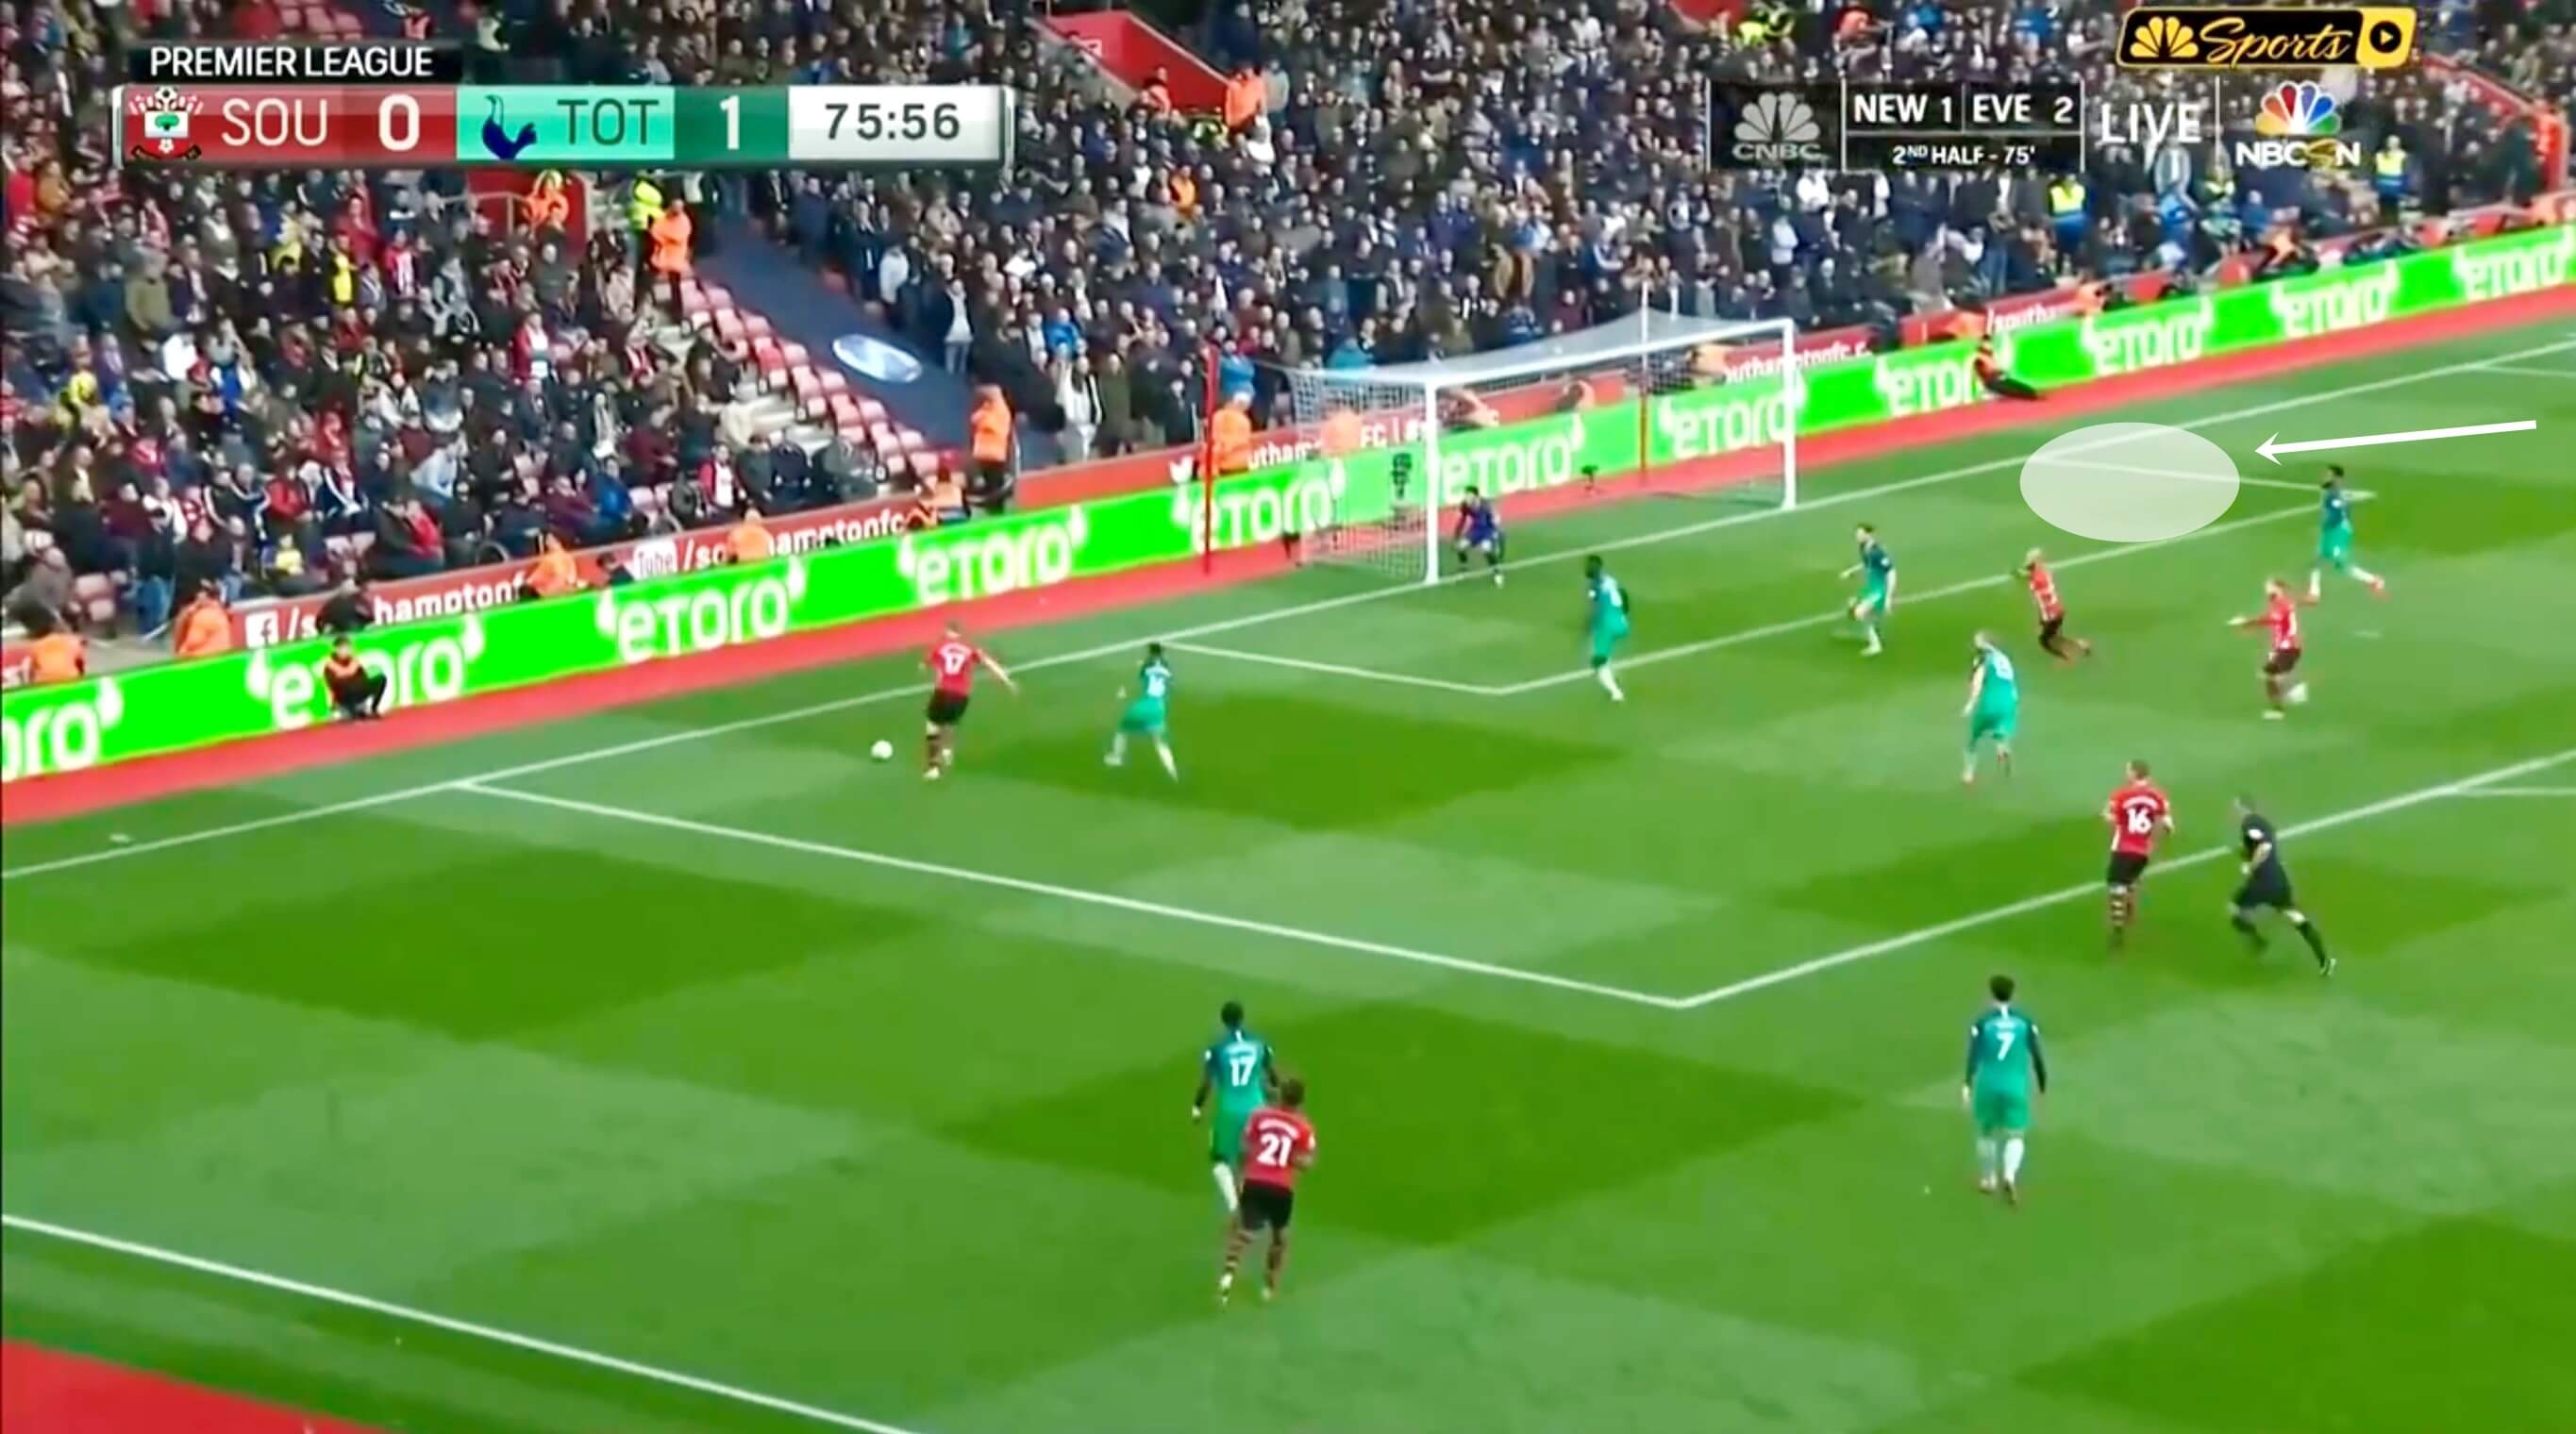 Southampton vs Tottenham Premier League 2018/19 Tactical Analysis